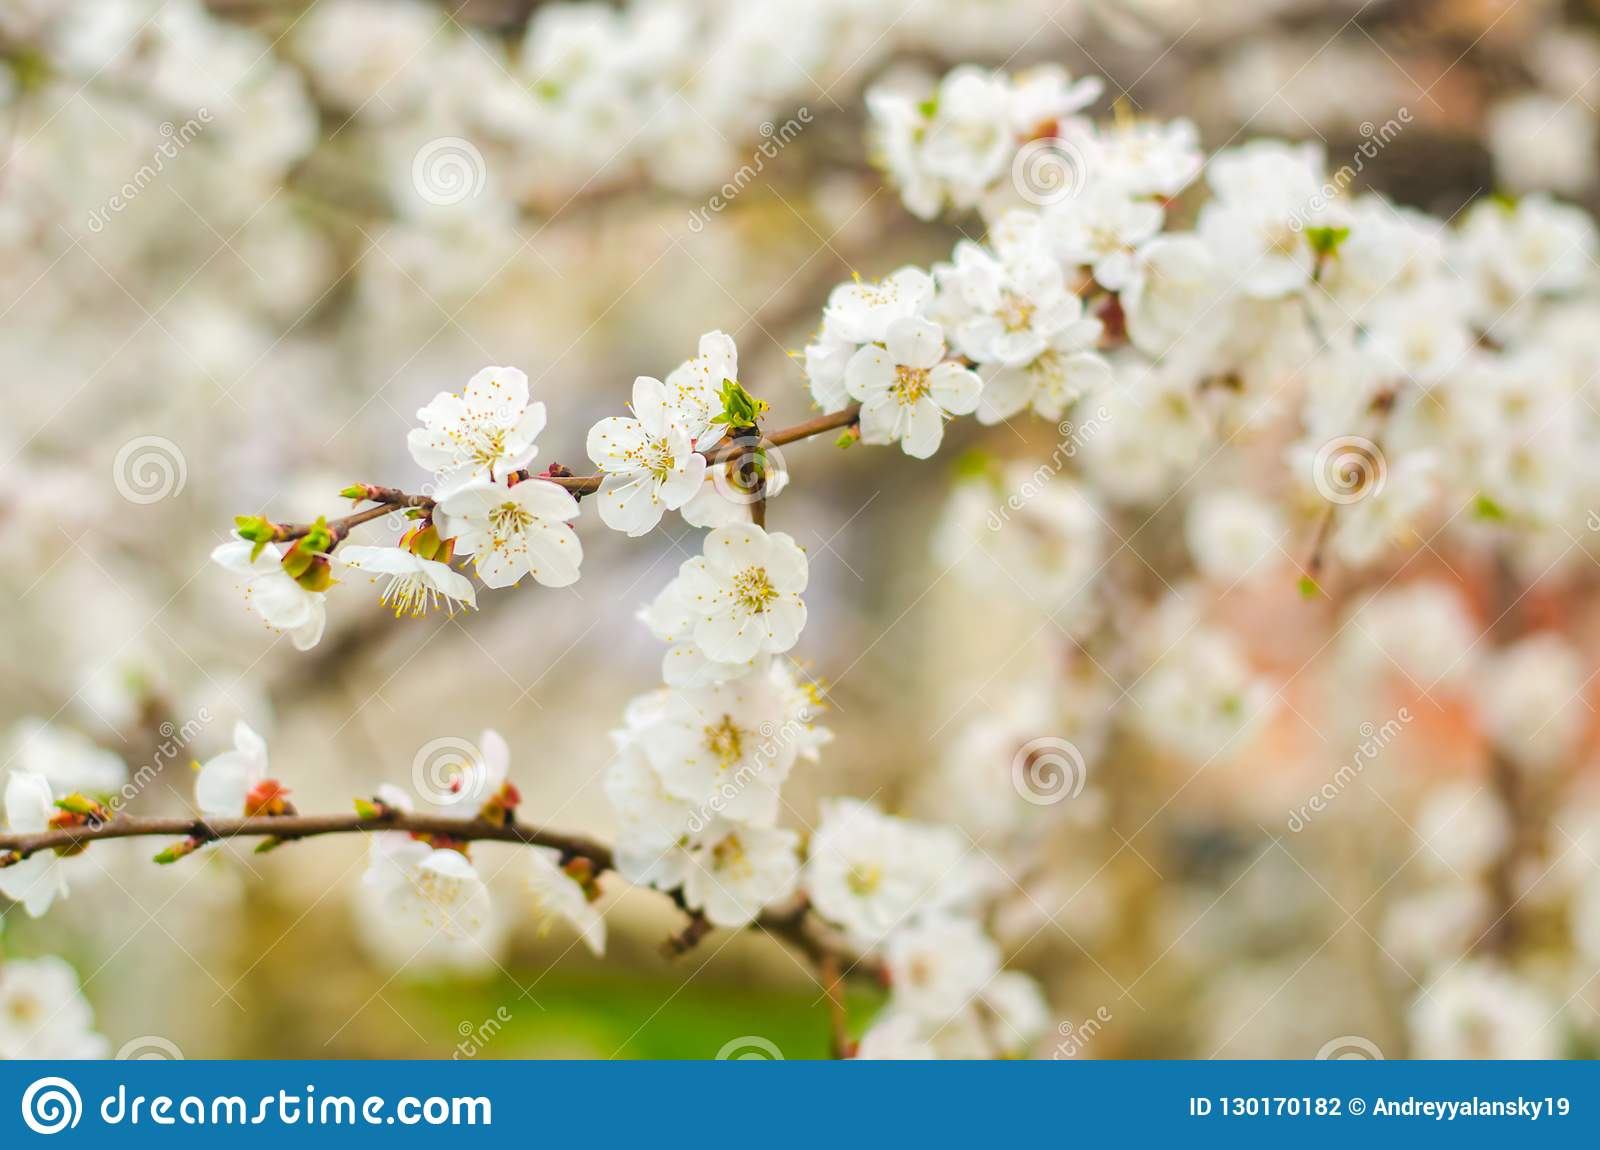 White Apricot Blossom Buds Flowering Tree In Aprile Concept Of